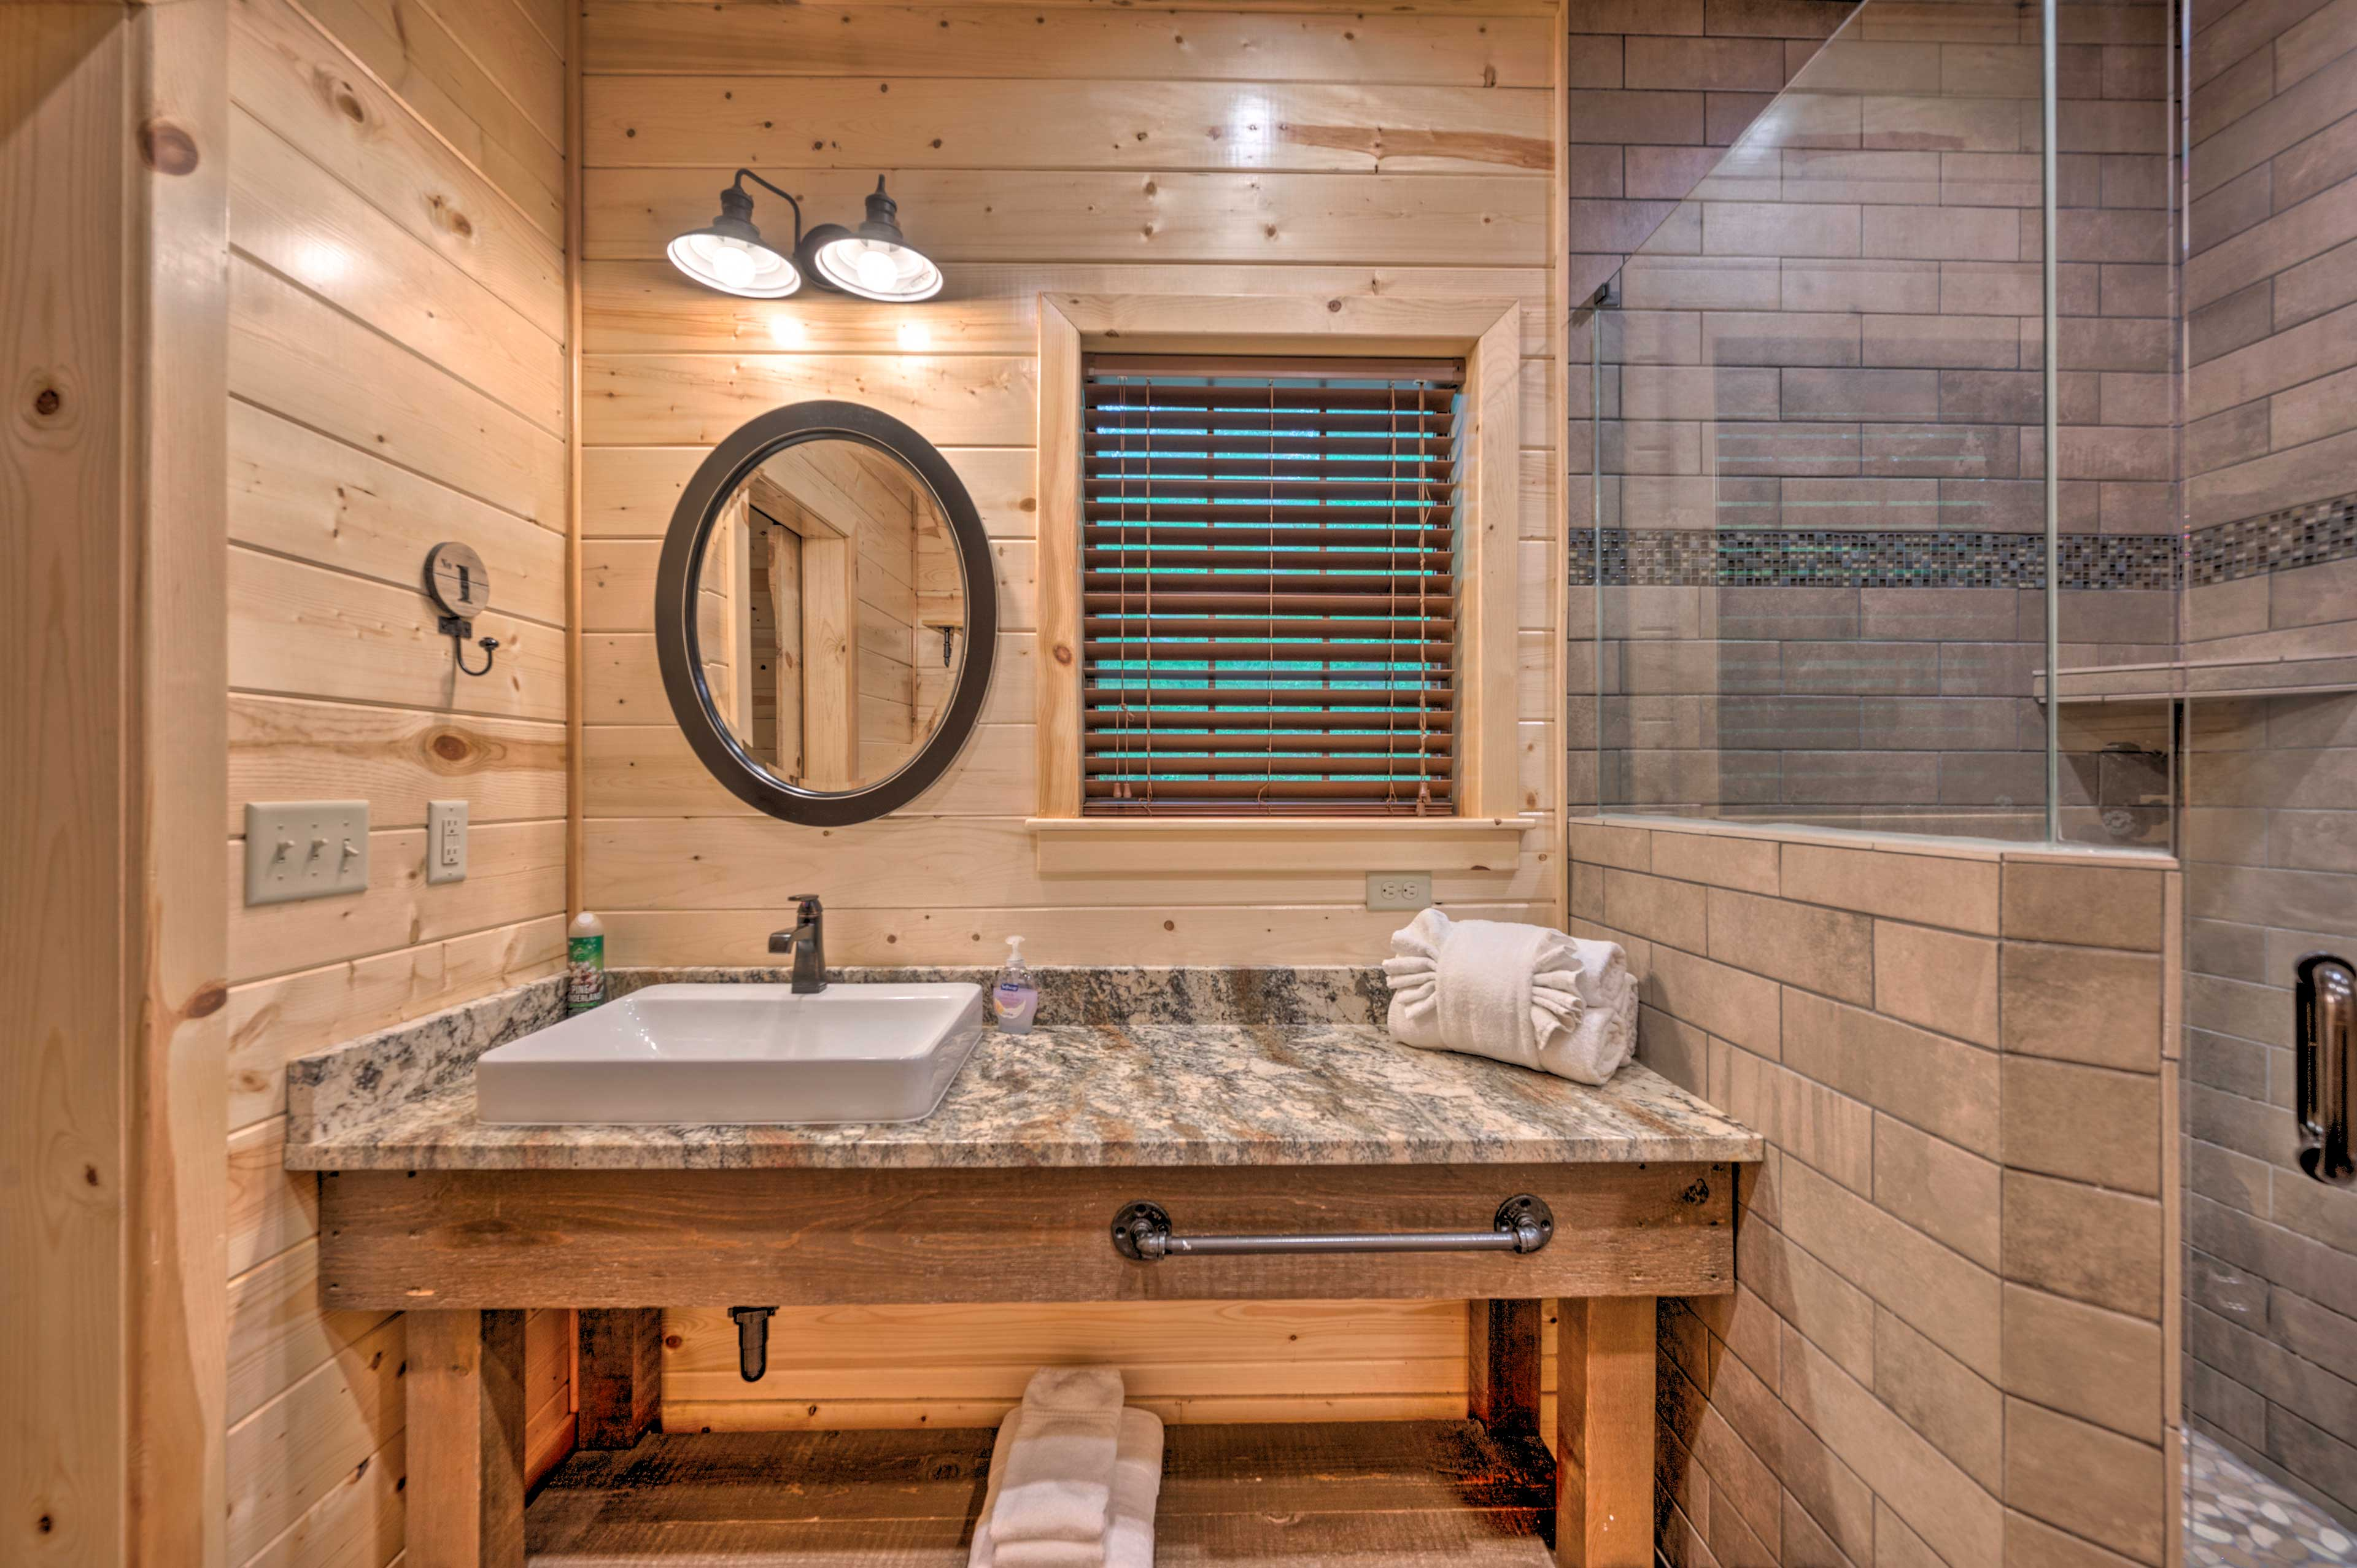 Full Bathroom | Complimentary Toiletries | Towels Provided